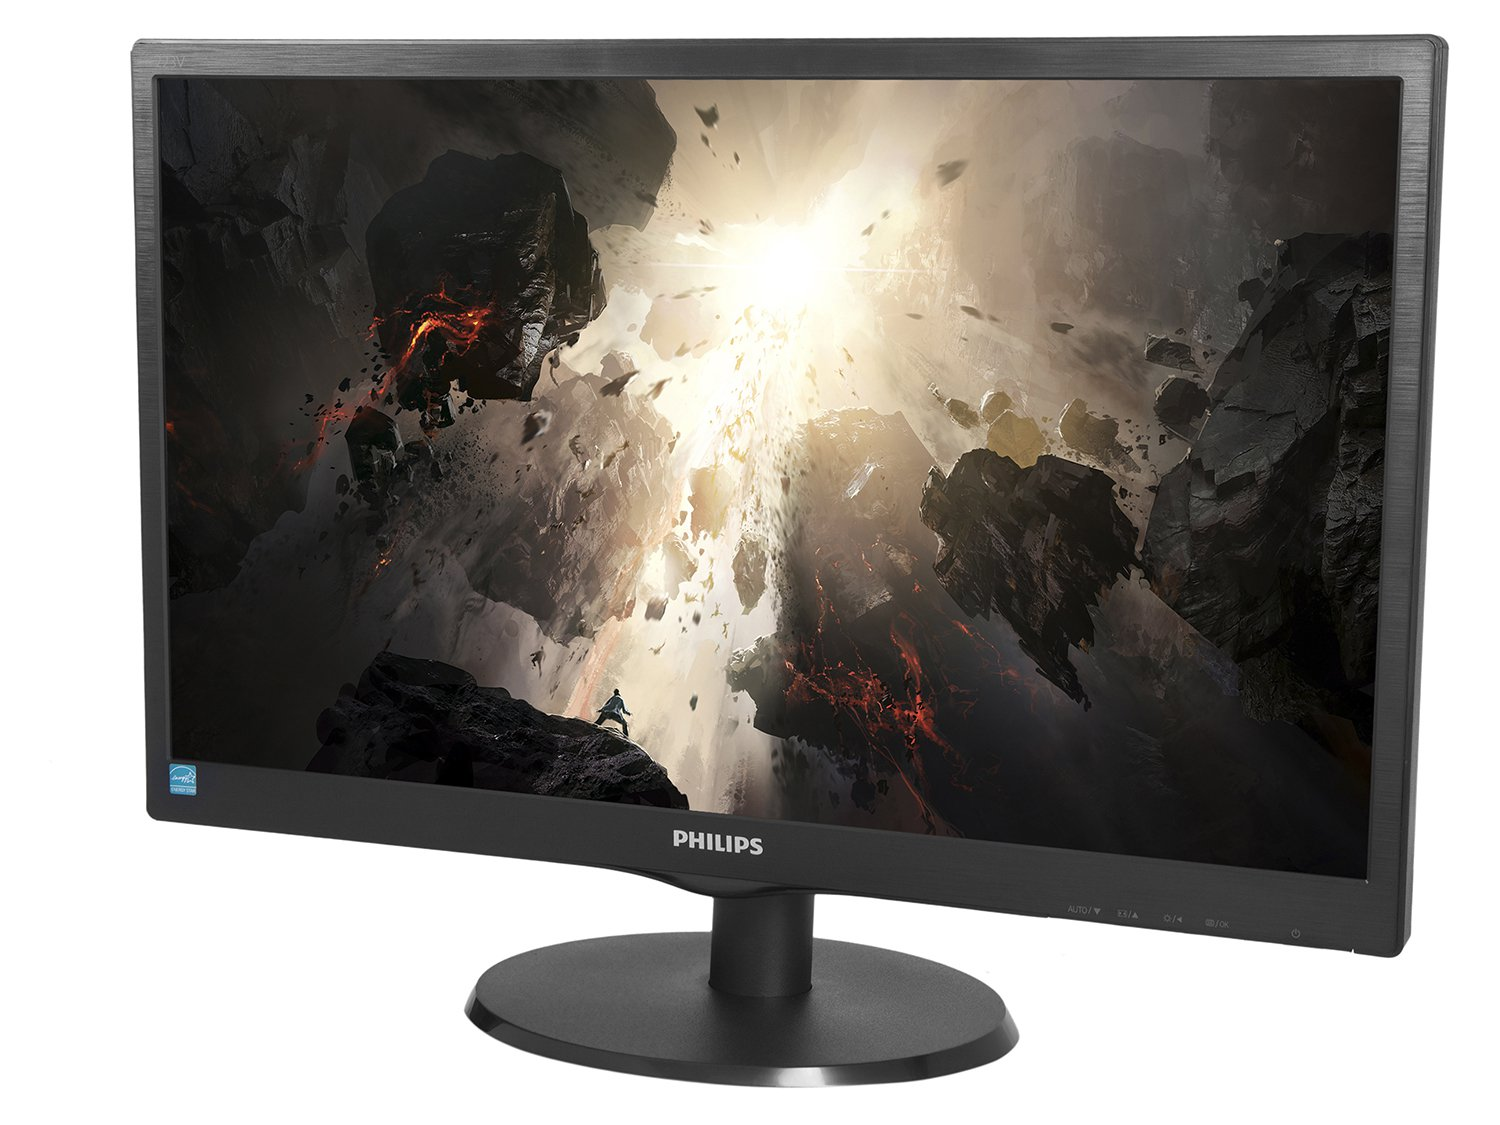 Foto 2 - Monitor para PC Full HD Philips LED Widescreen - 21,5 V5 223V5LHSB2